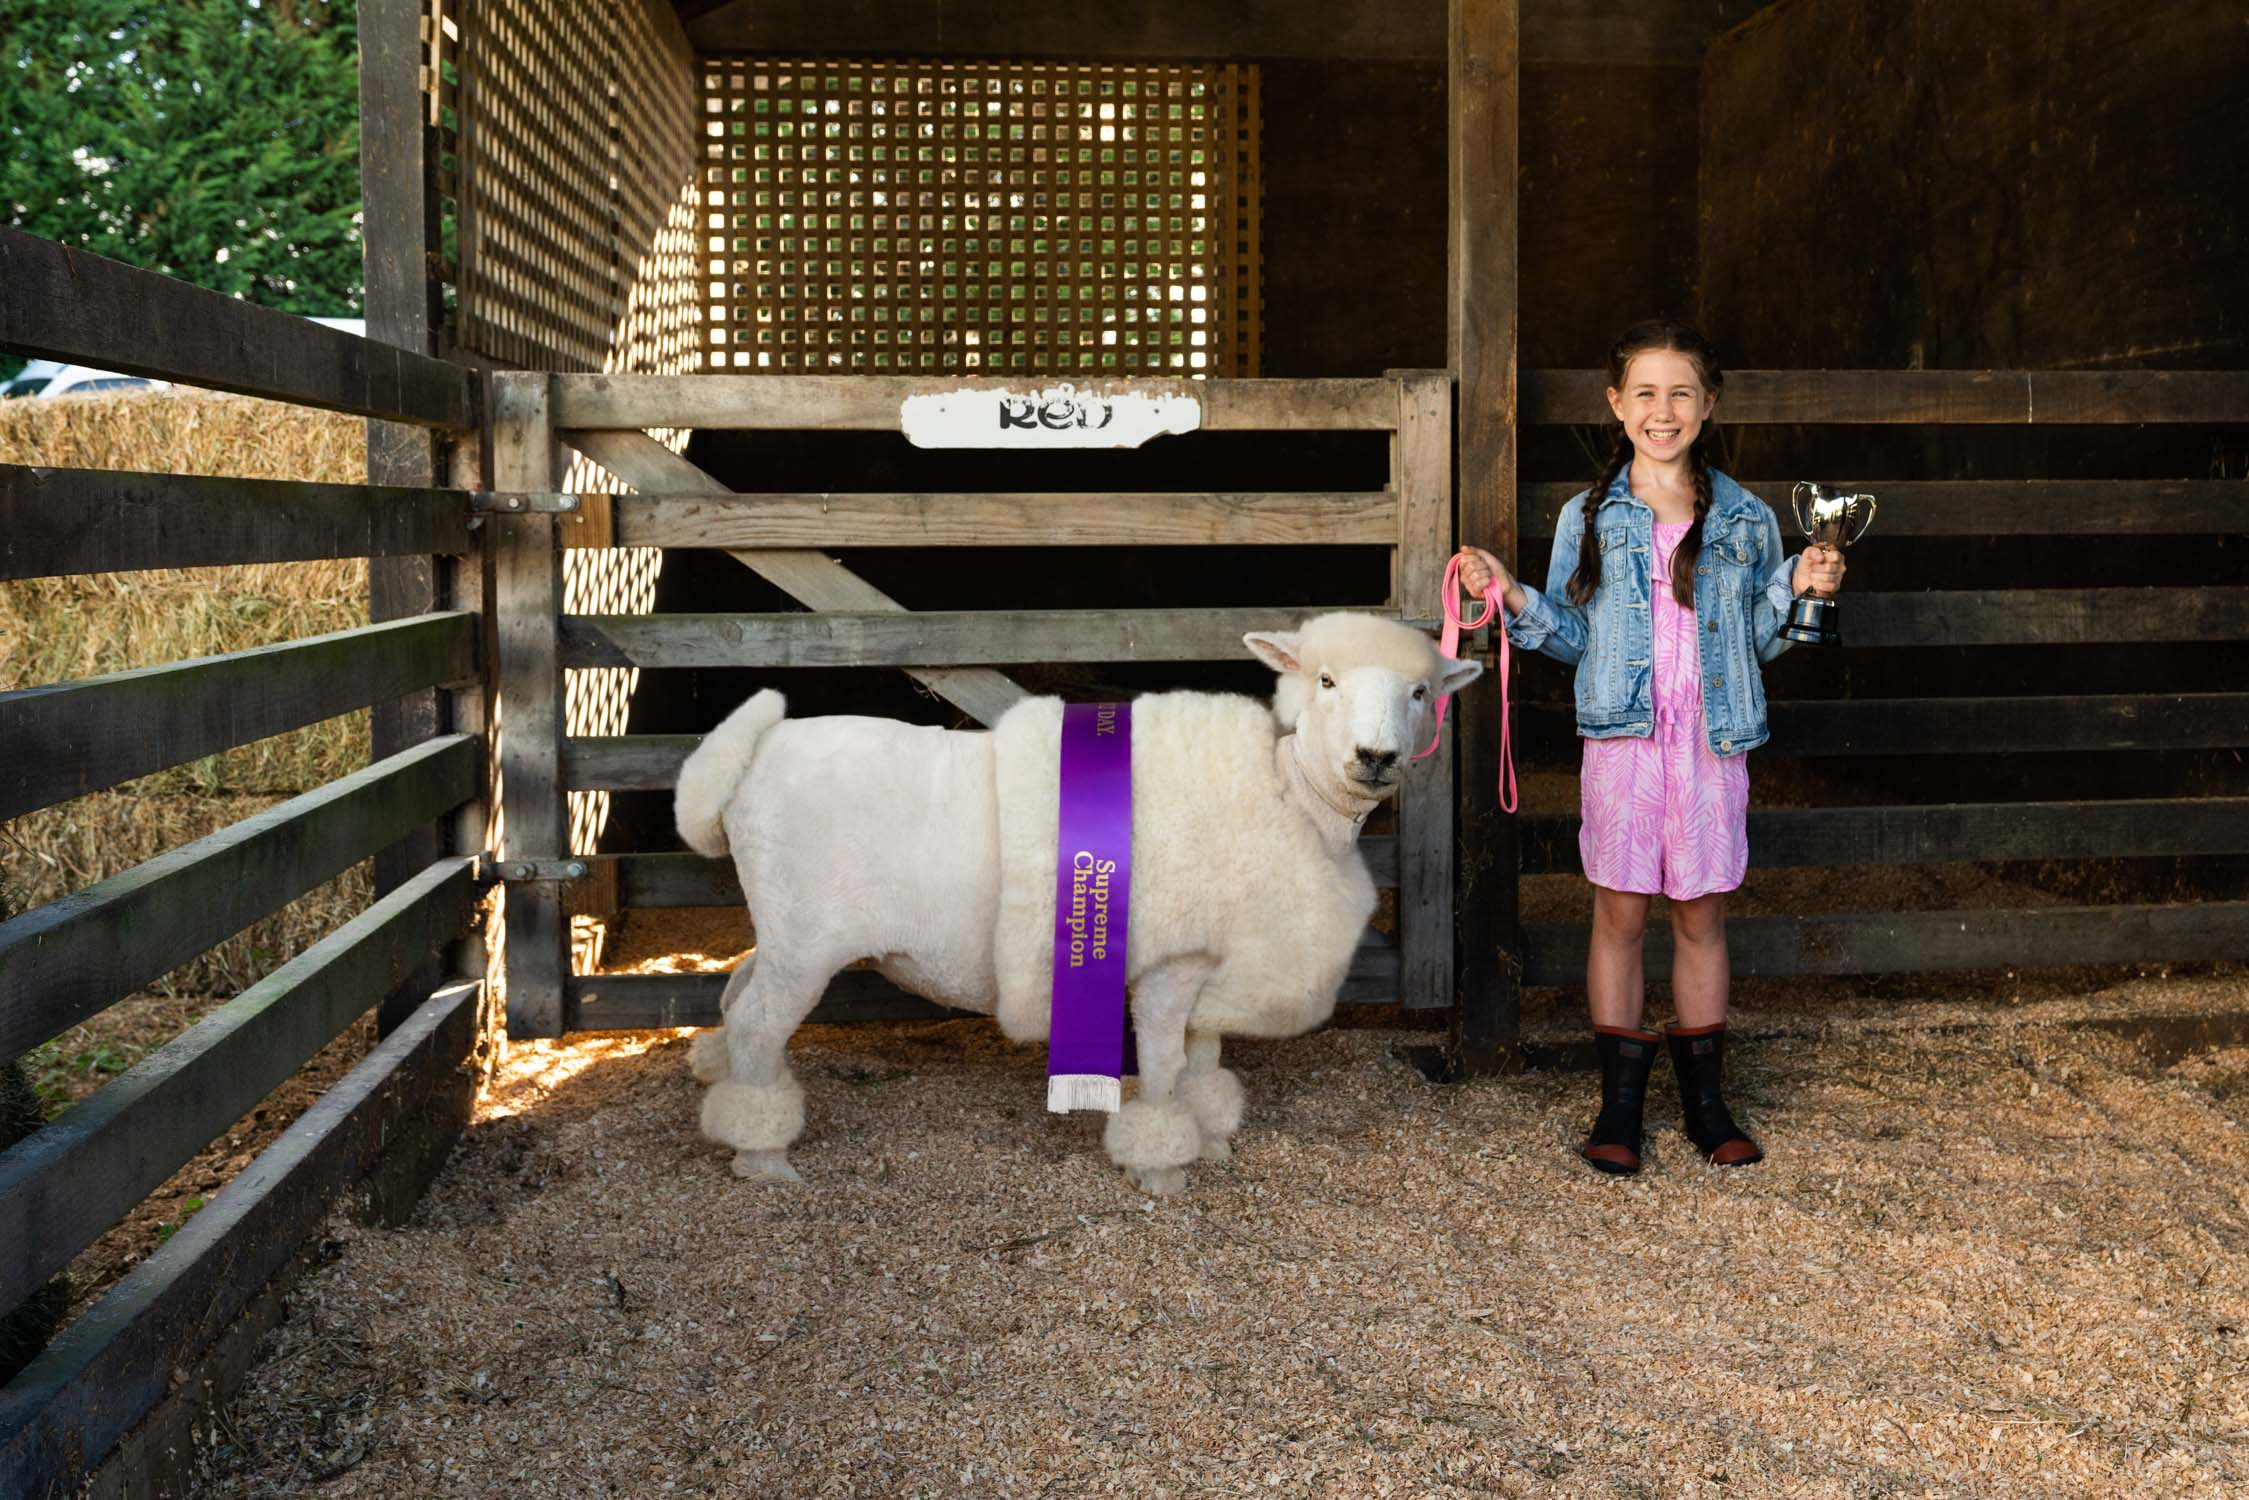 FMG_10 year old girl with pet sheep_Spid Pye_FMG_Shoodle.jpg